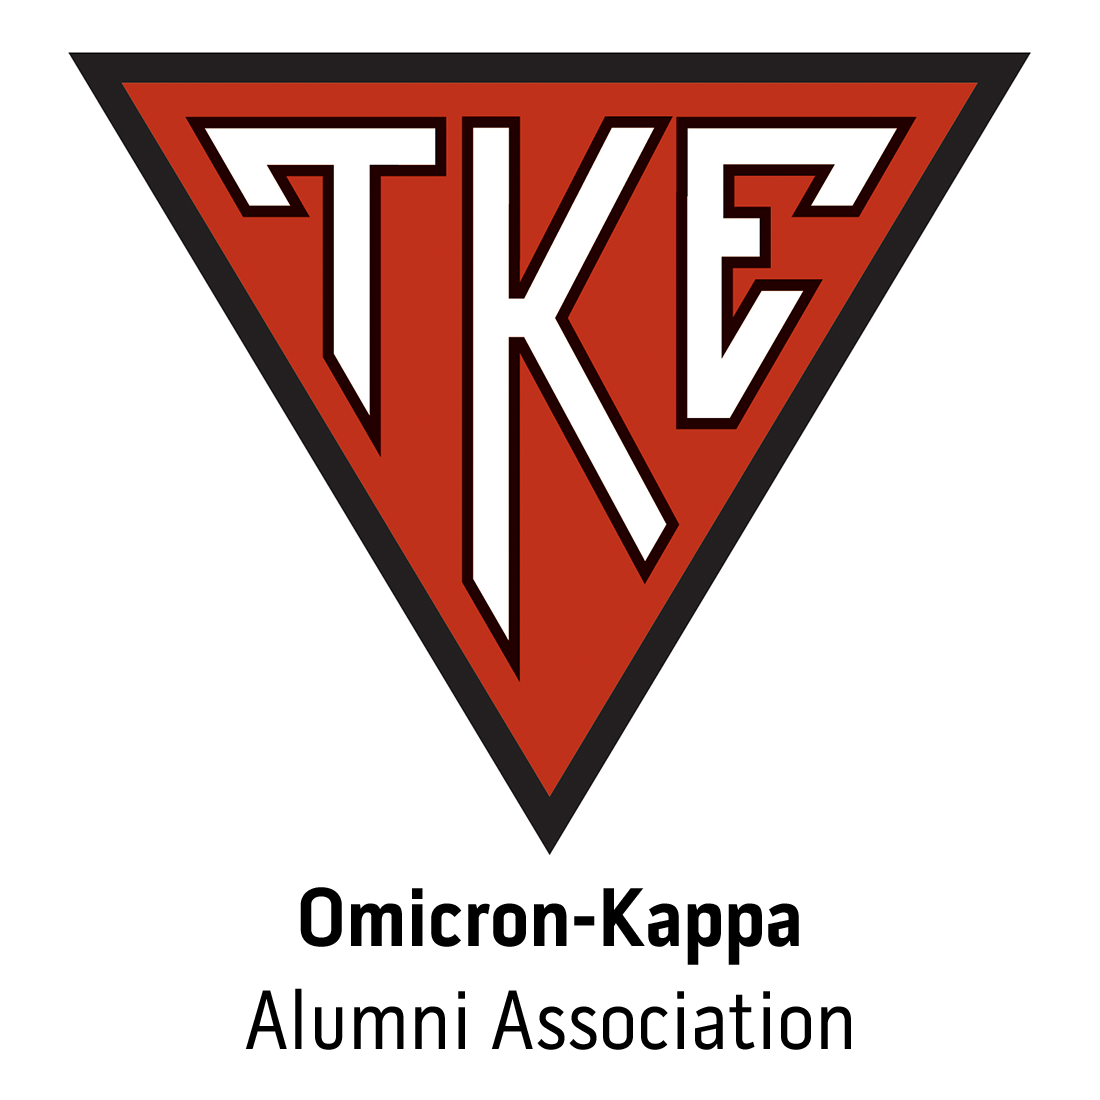 Omicron-Kappa Alumni Association at University of Louisiana at Lafayette